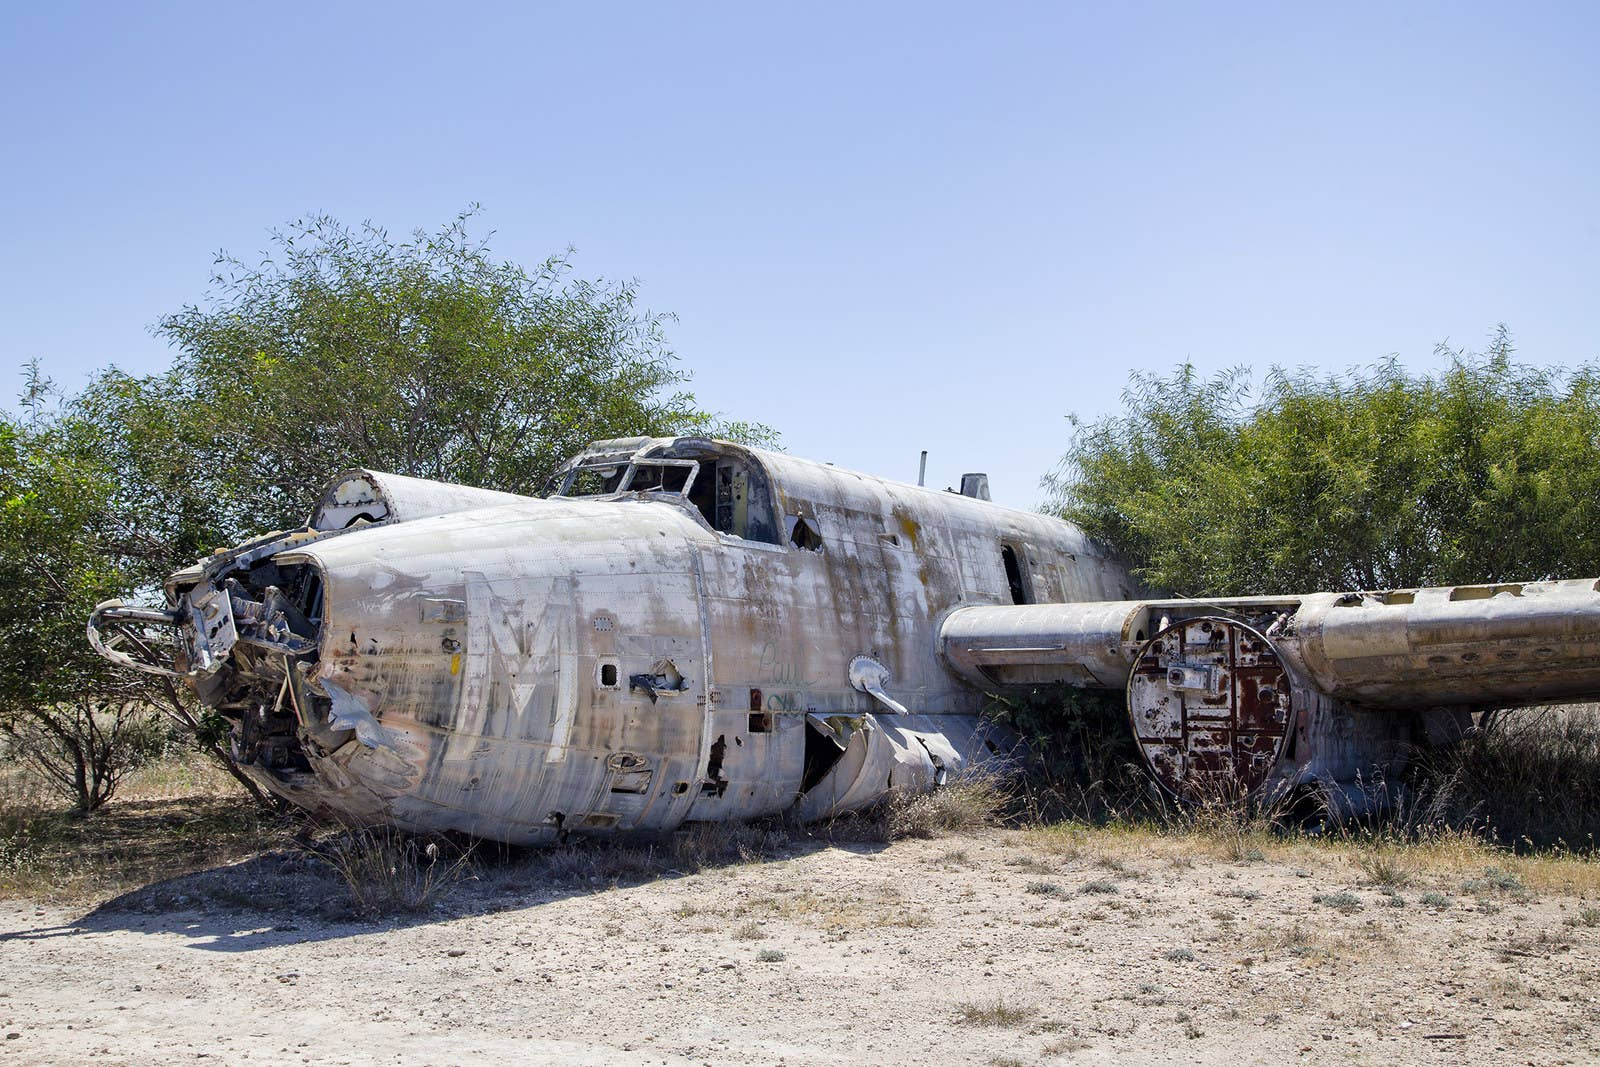 The remains of Avro Shackleton, a British long-range maritime patrol aircraft, at the abandoned Nicosia International Airport.